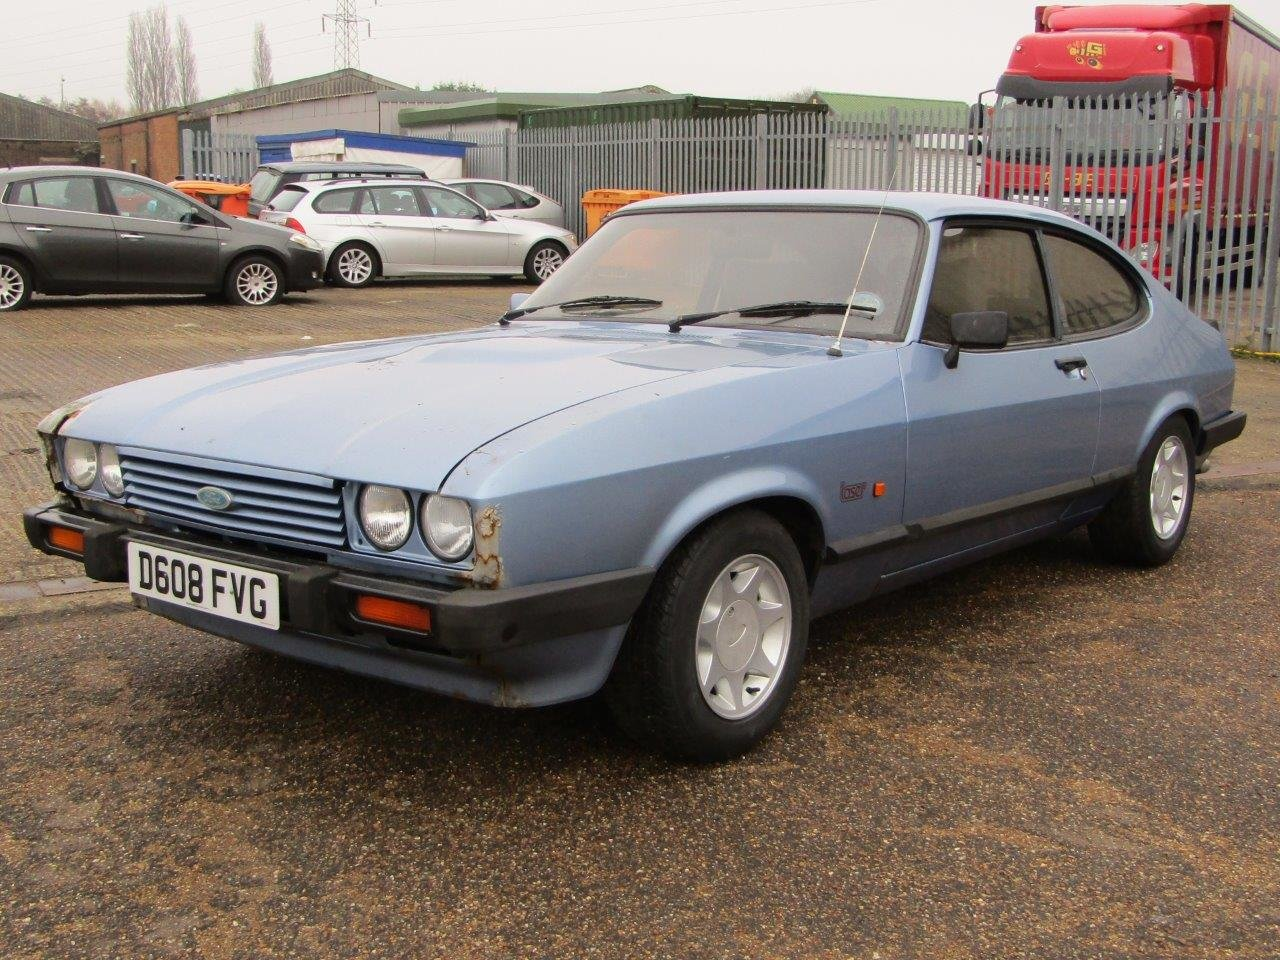 1986 Ford Capri 1.6 Laser at ACA 27th and 28th February For Sale by Auction (picture 3 of 11)